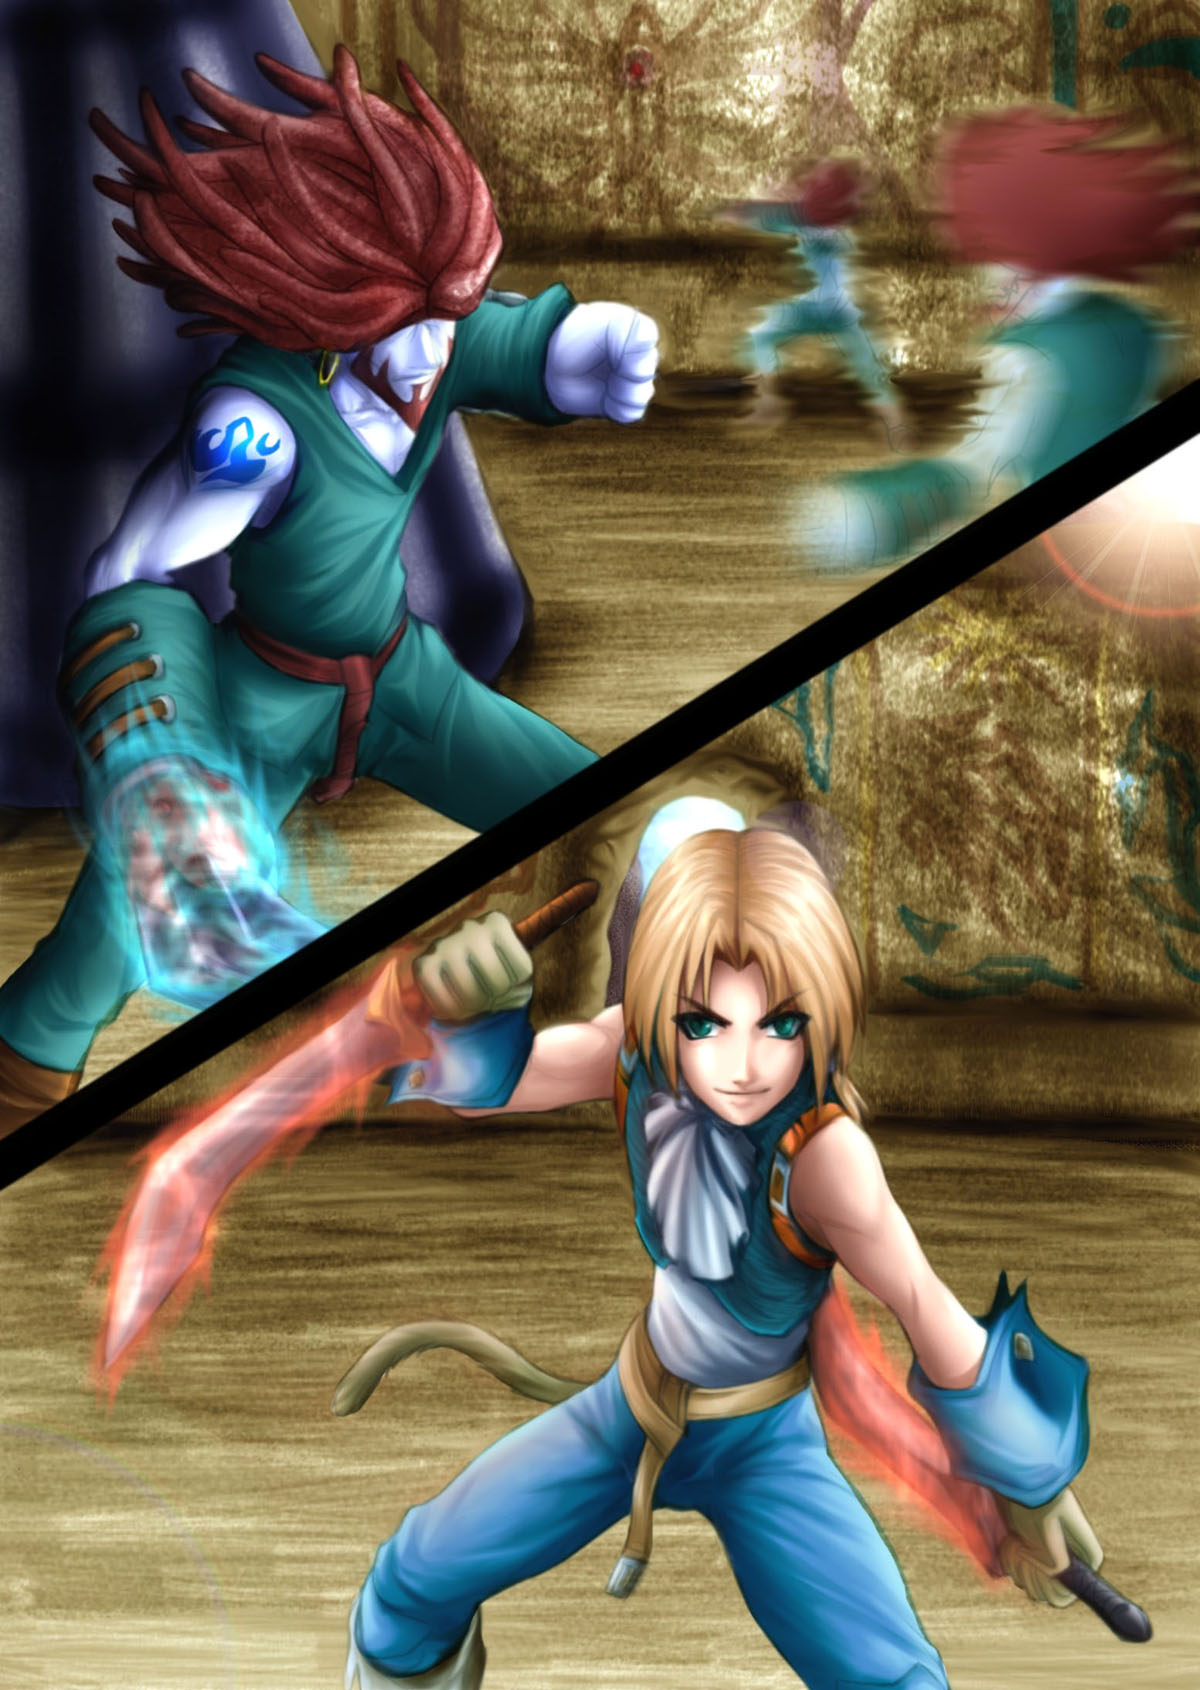 ZIDANE_TRIBAL_VS_AMARANT_CORAL_by_DBkun.jpg